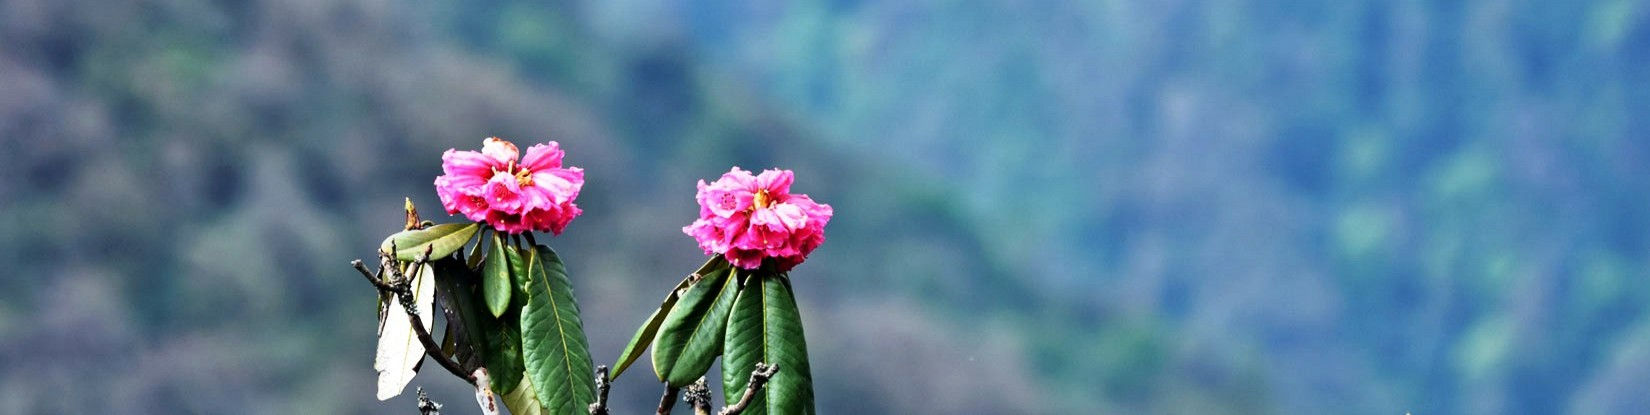 Colorful rhododendron